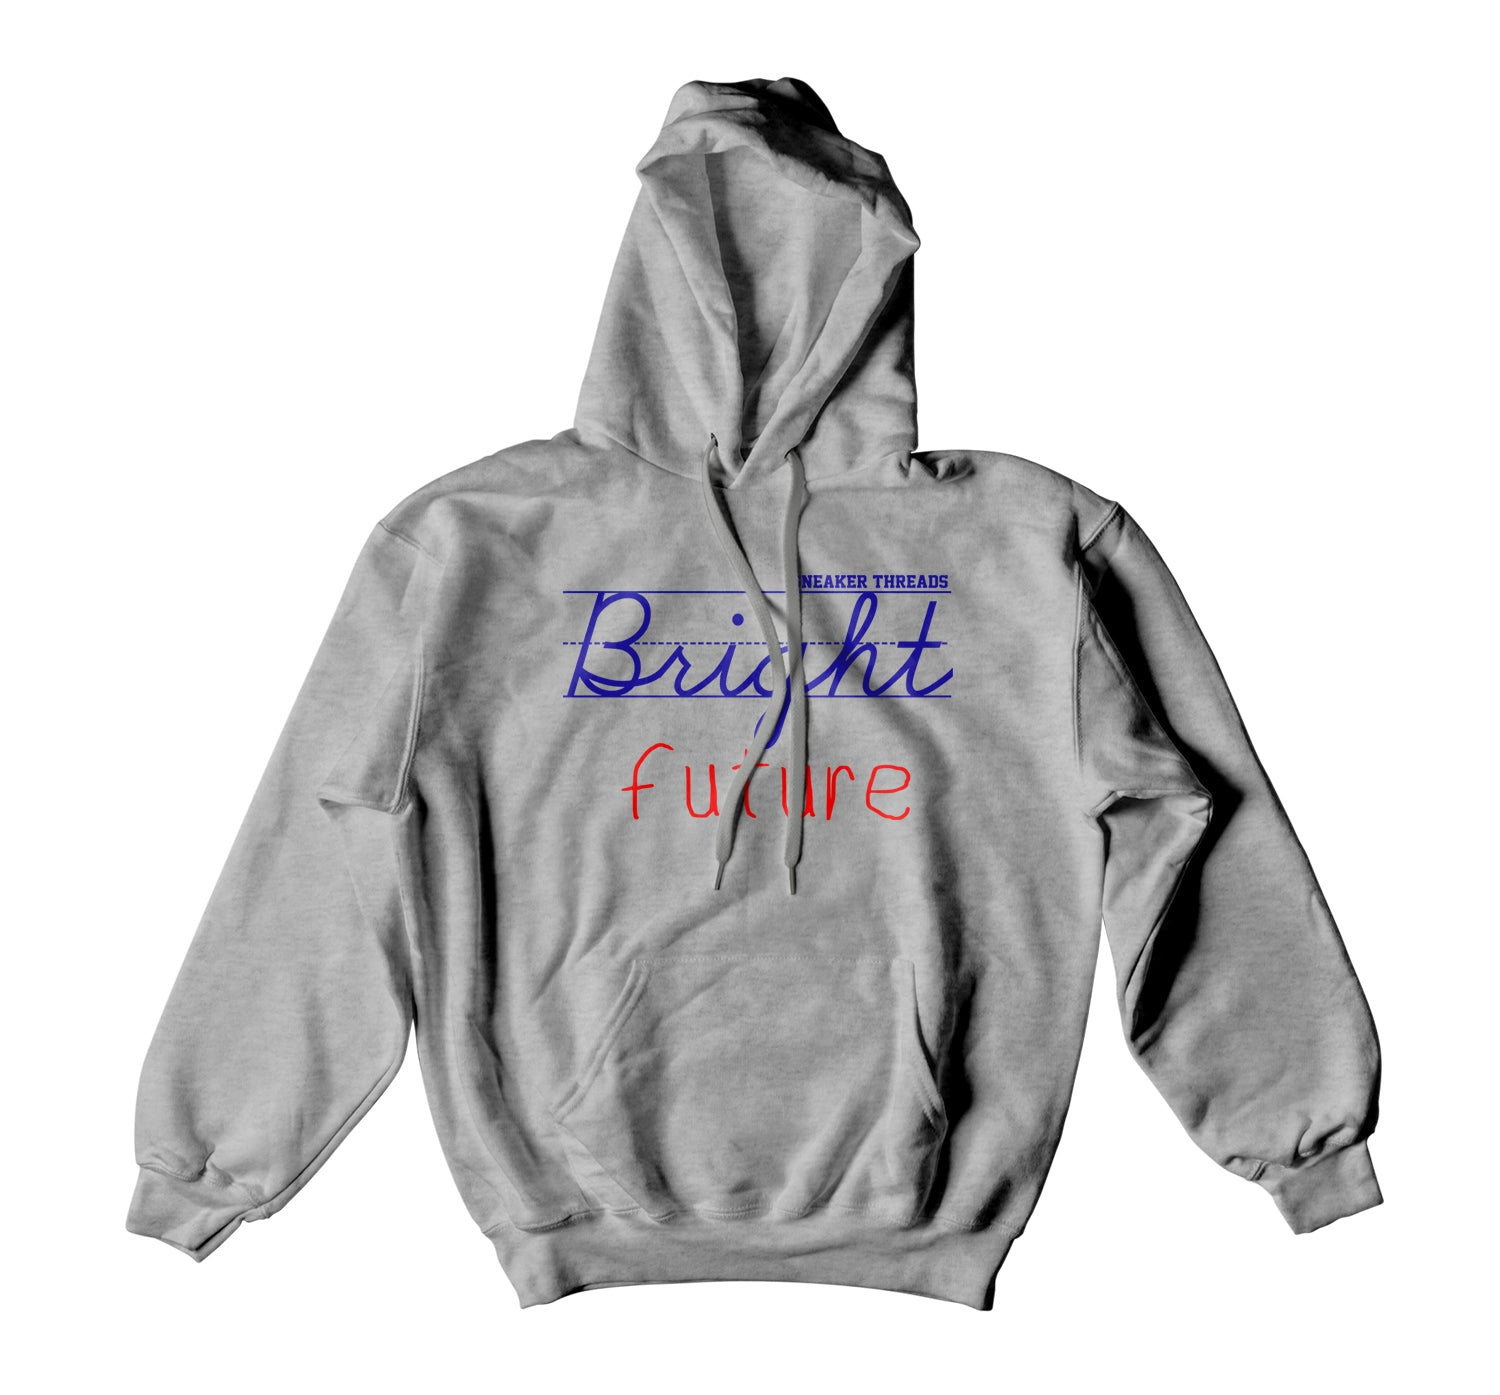 All Star 2020 Tune Squad Hoody  - Bright Future - Heather Grey